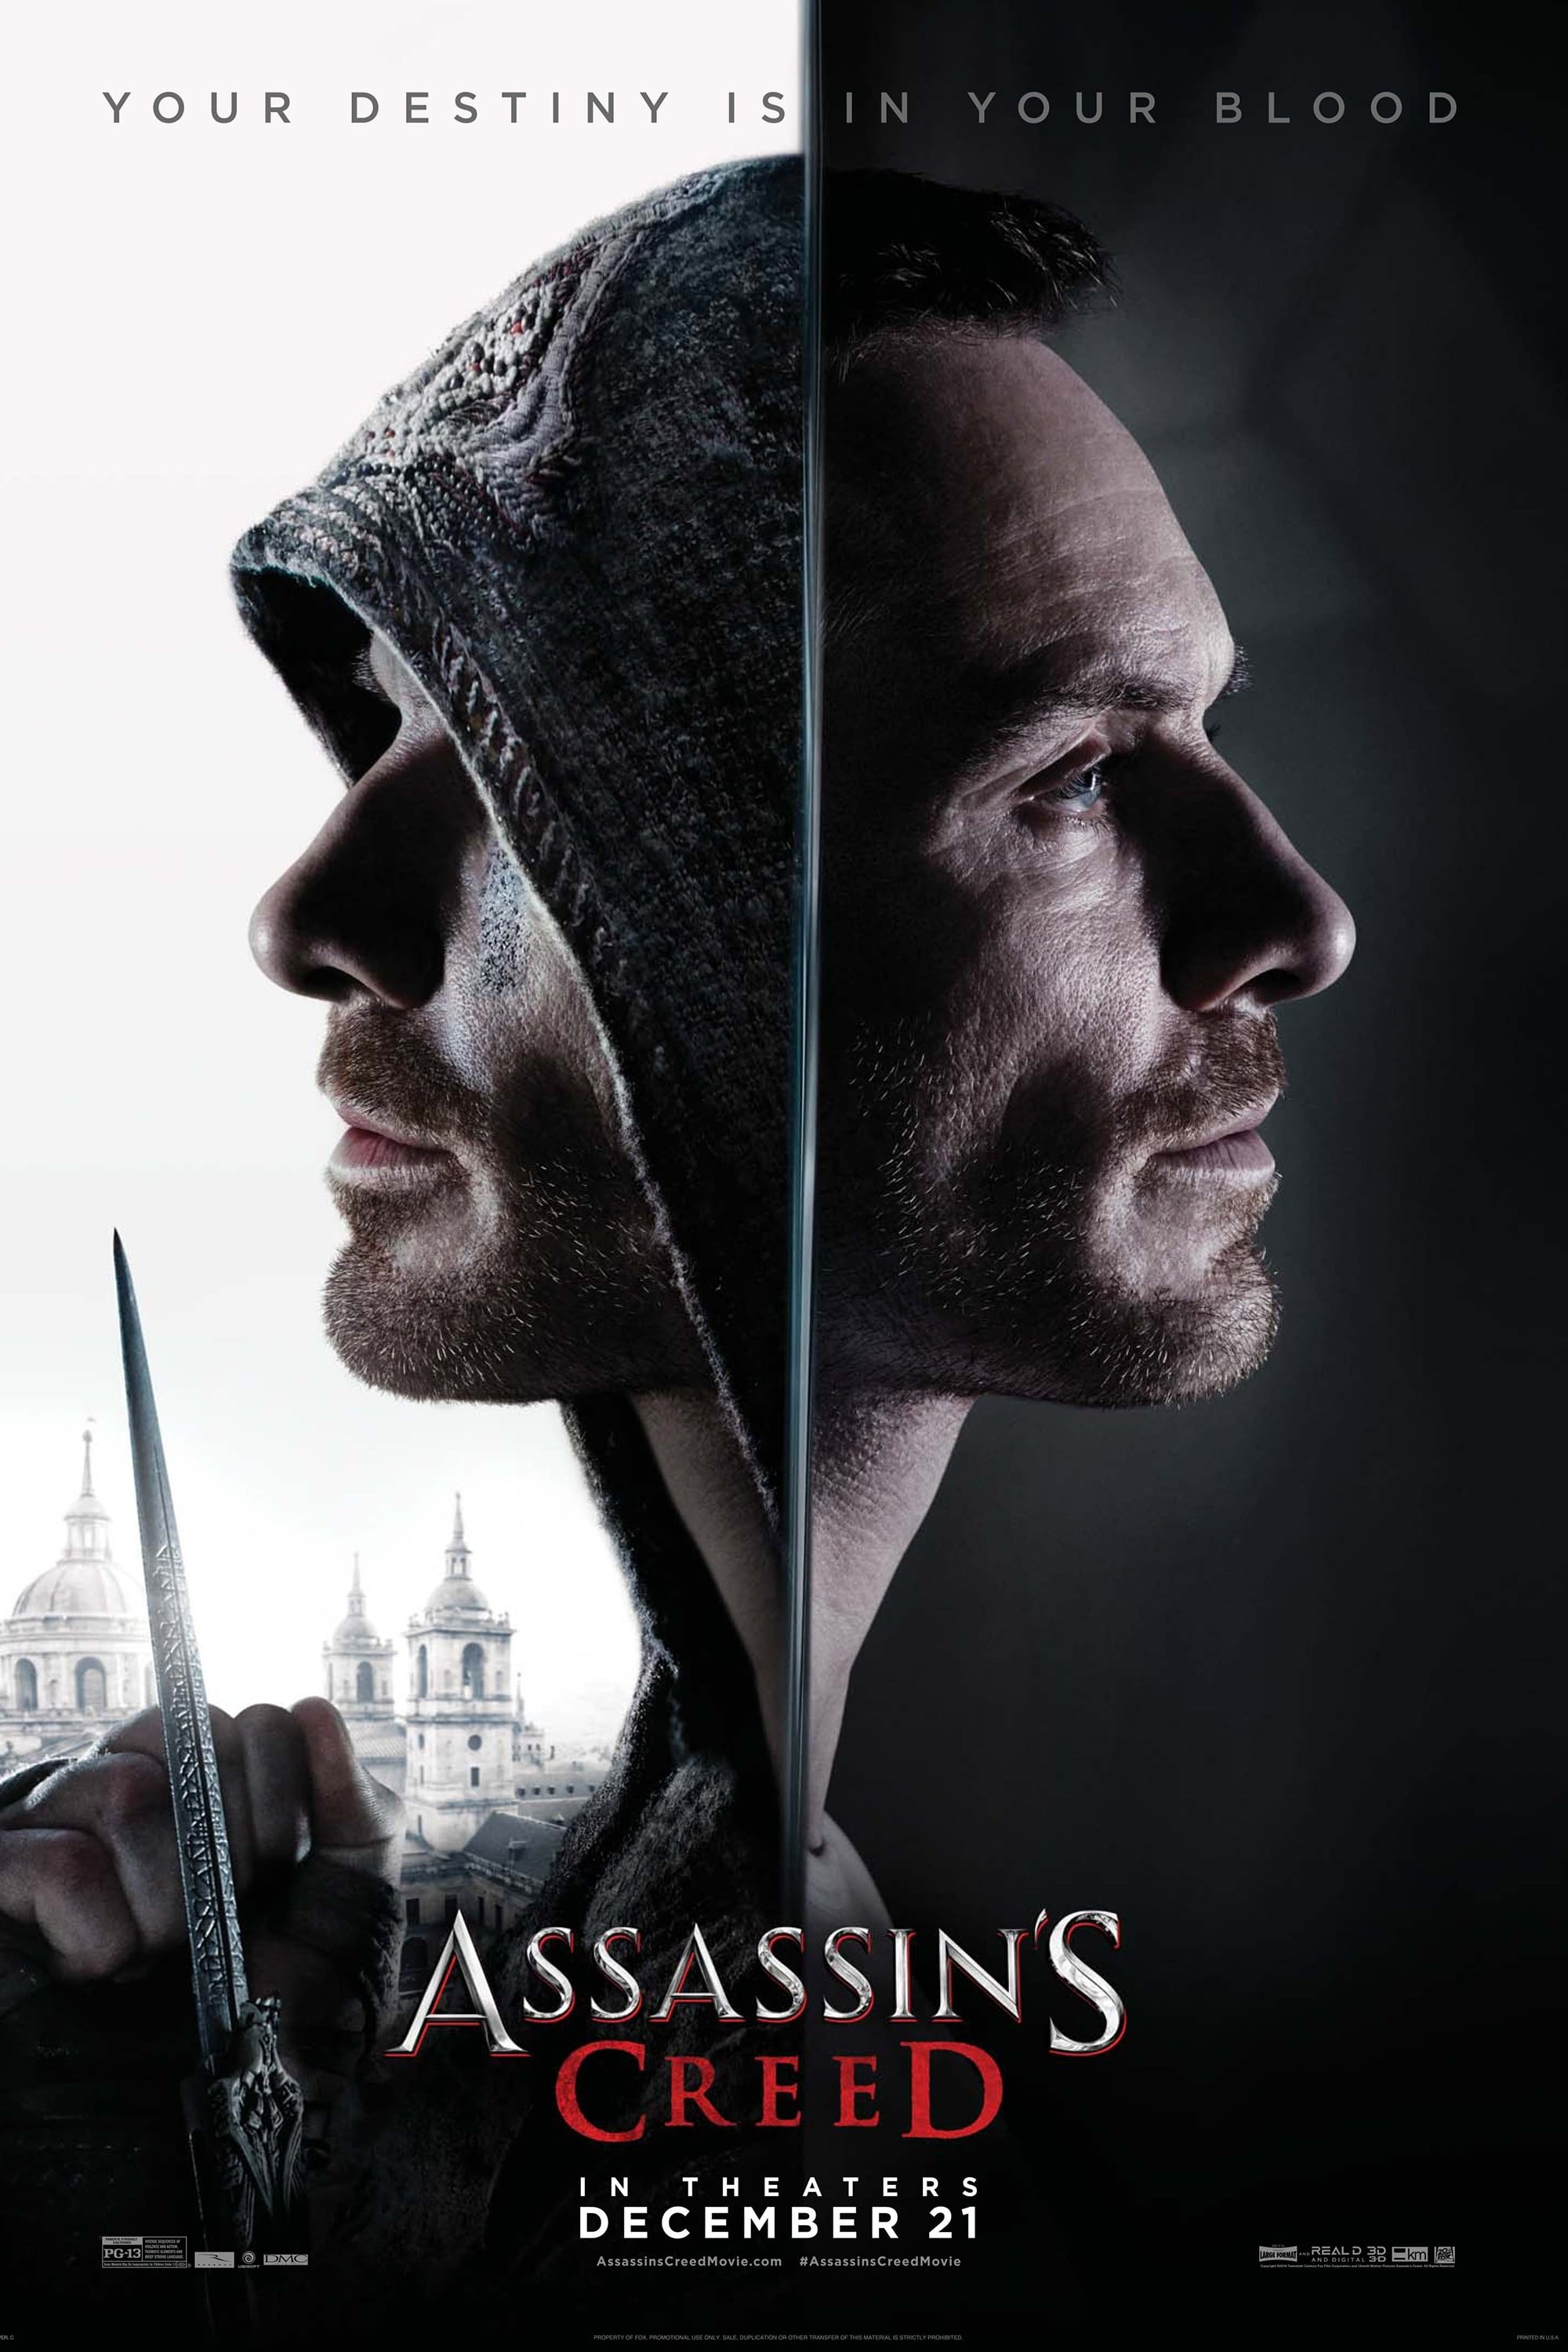 Assassin's Creed / Assassins Creed